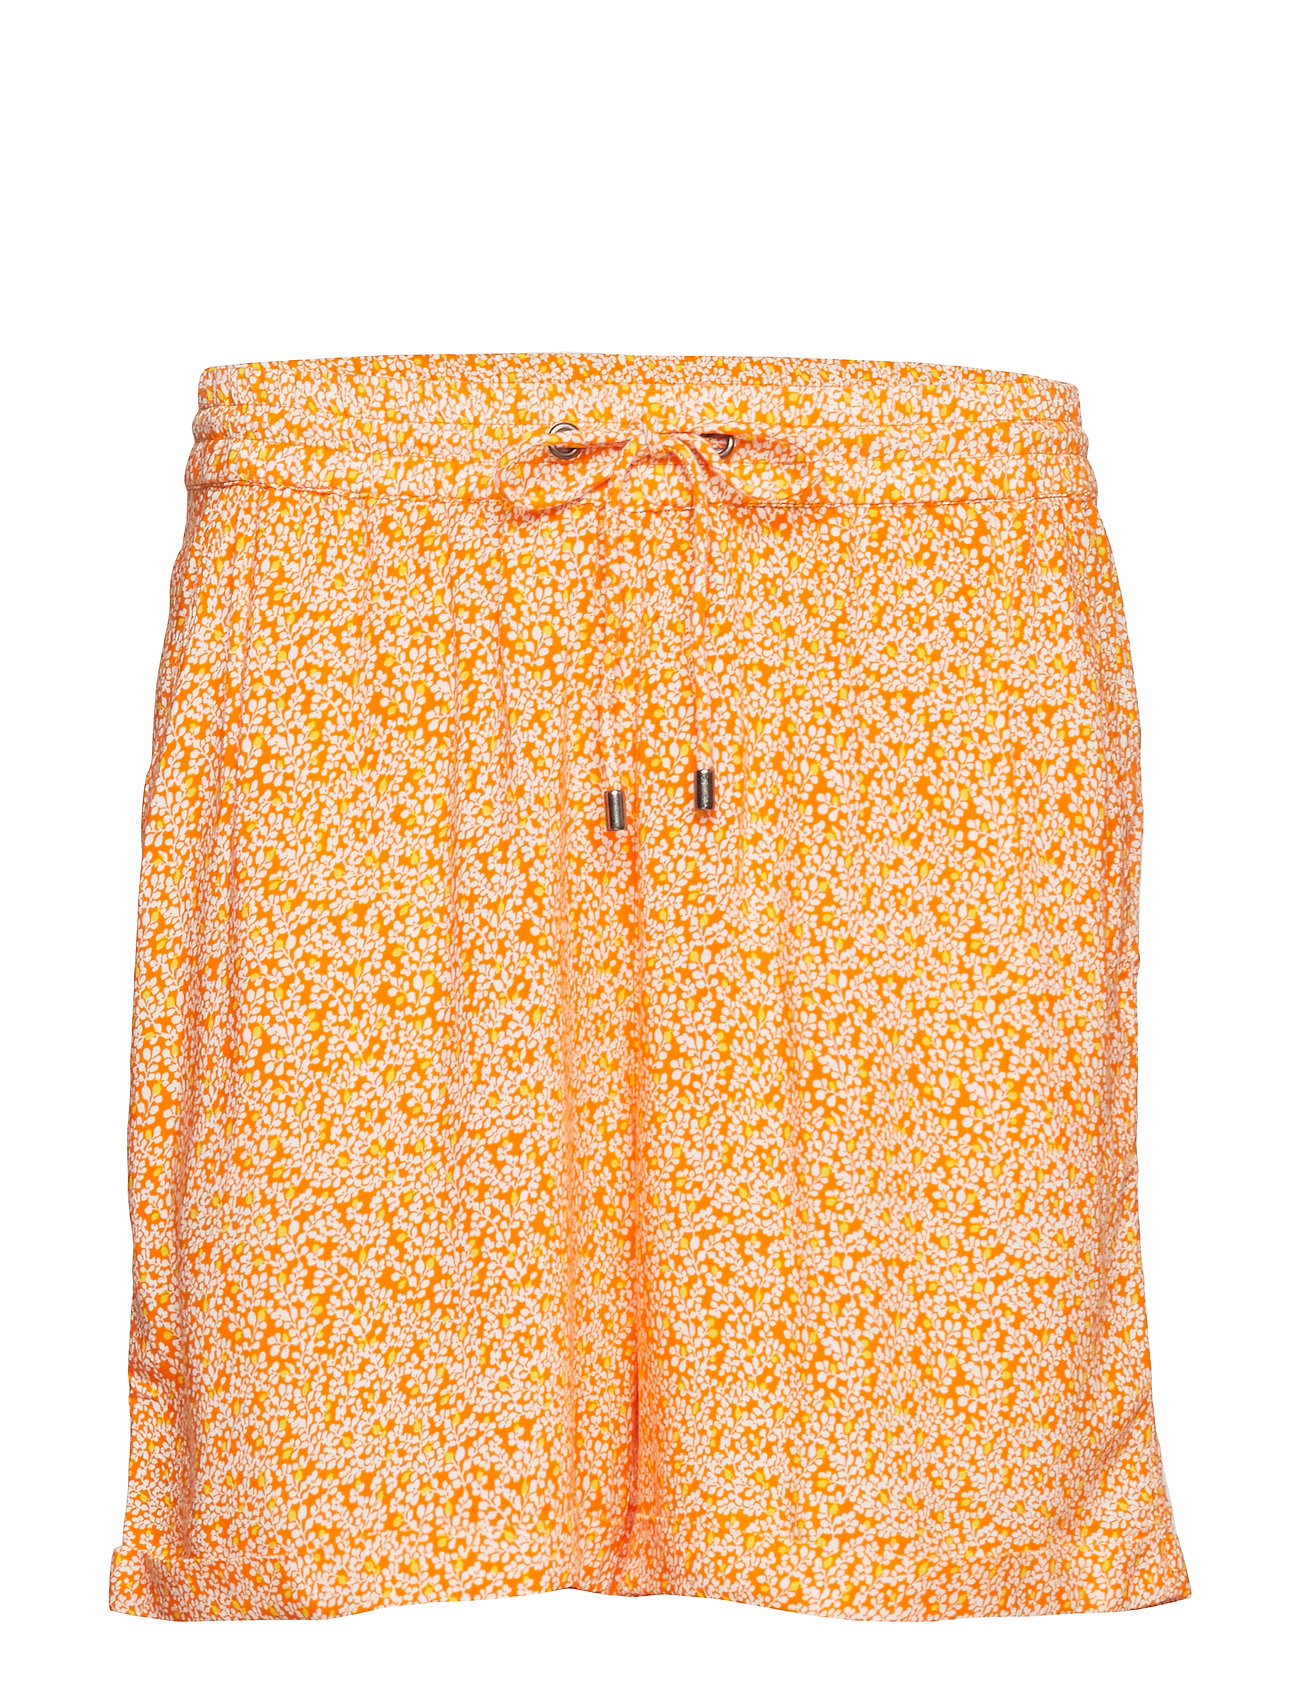 Signal Shorts - PERSIMMON ORANGE